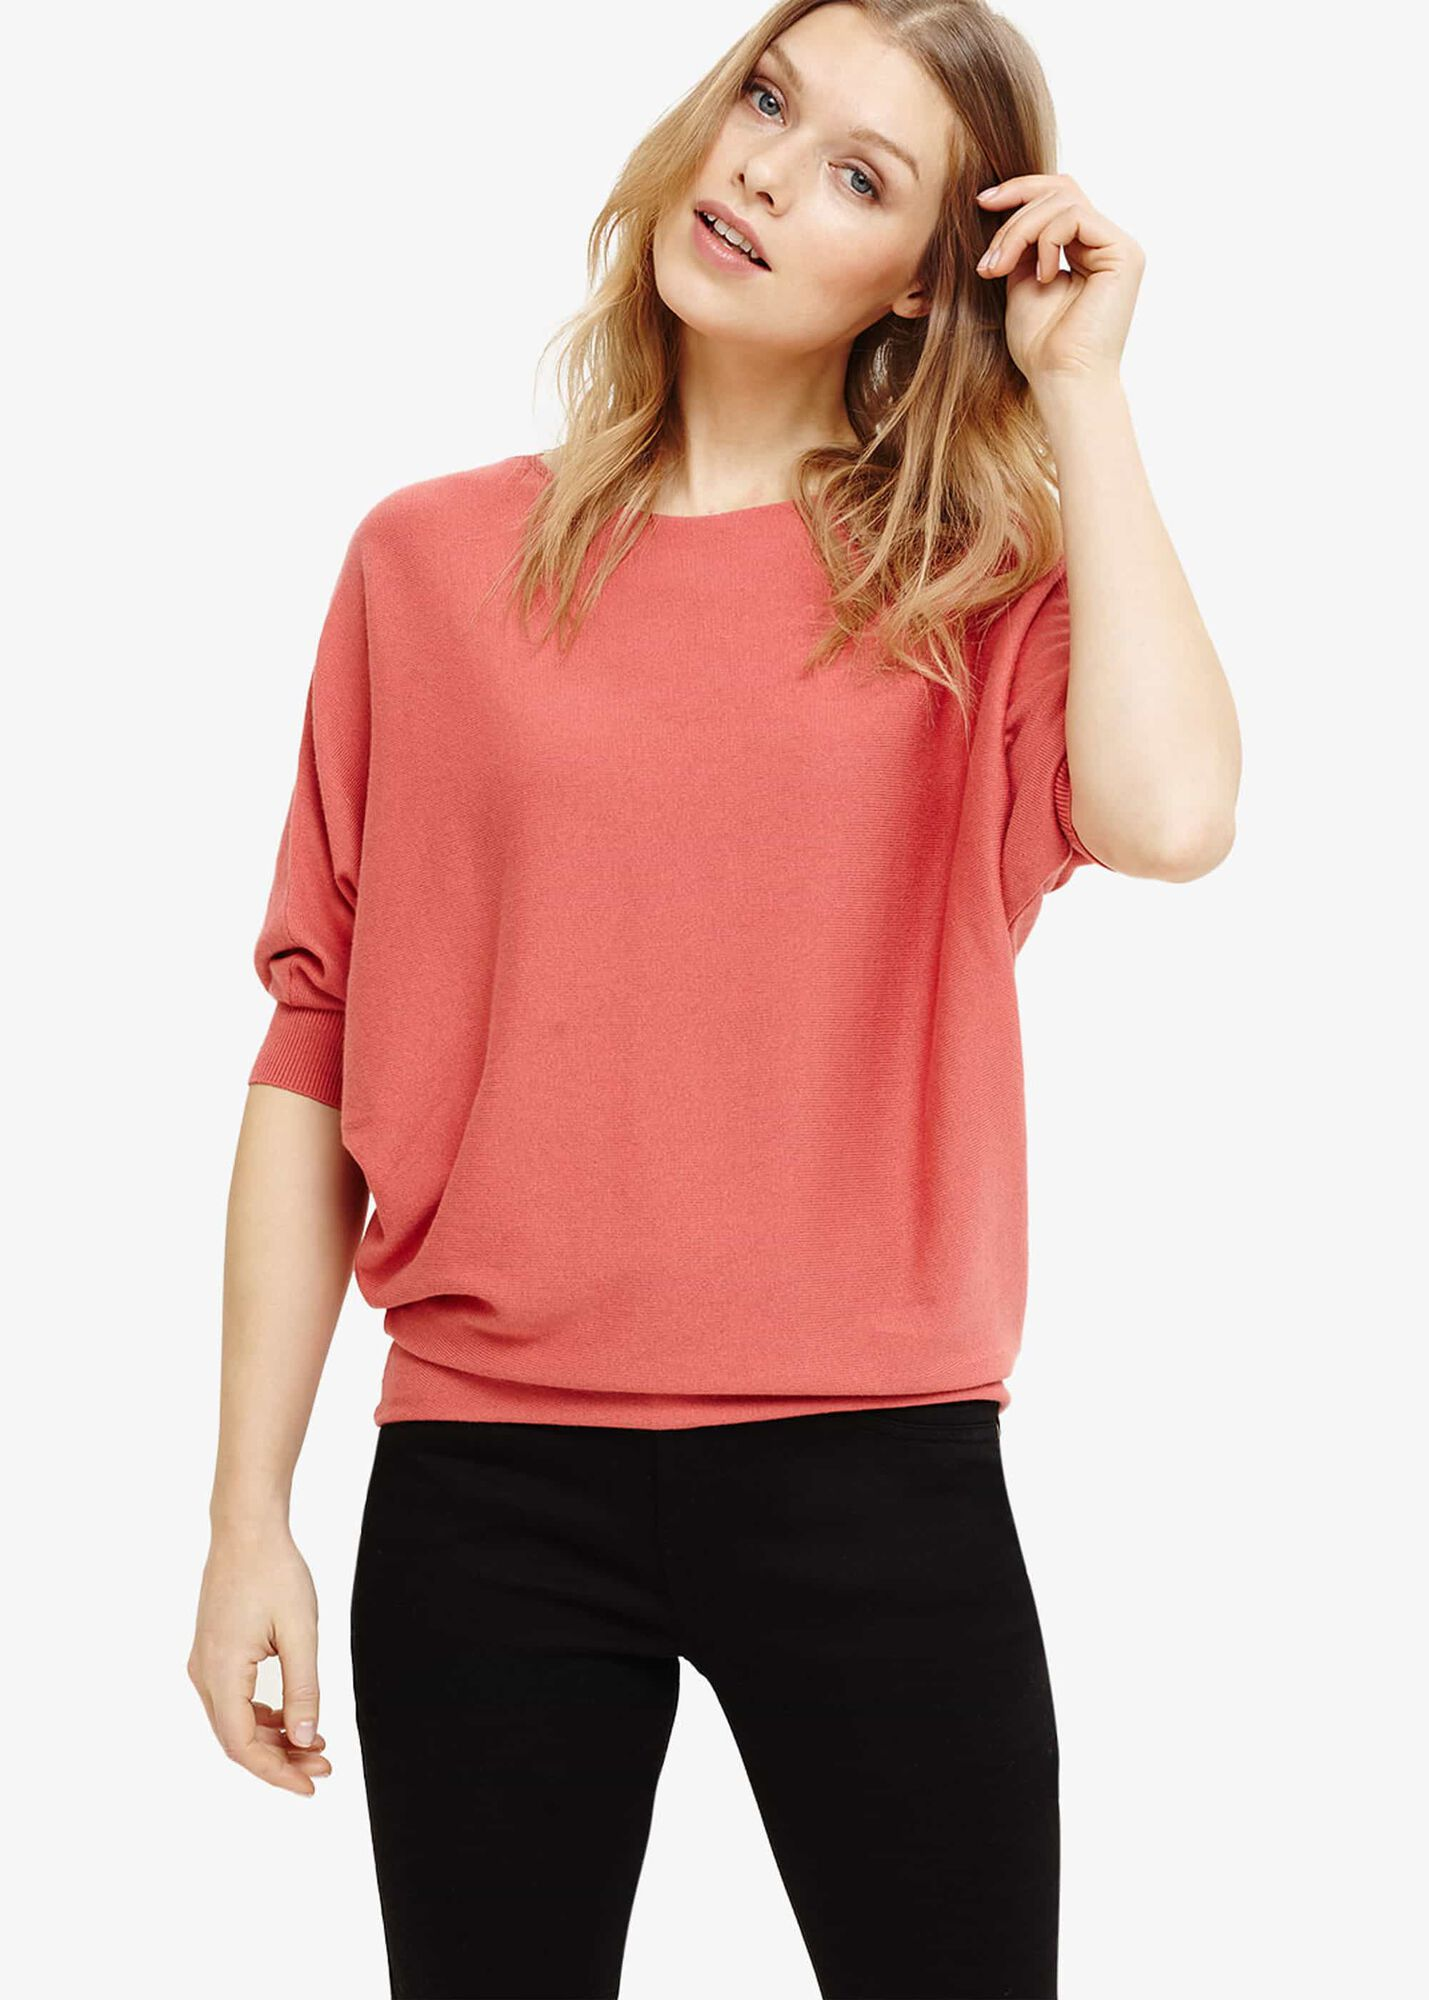 a4181e84f24 Becca Batwing Knit Top   Phase Eight